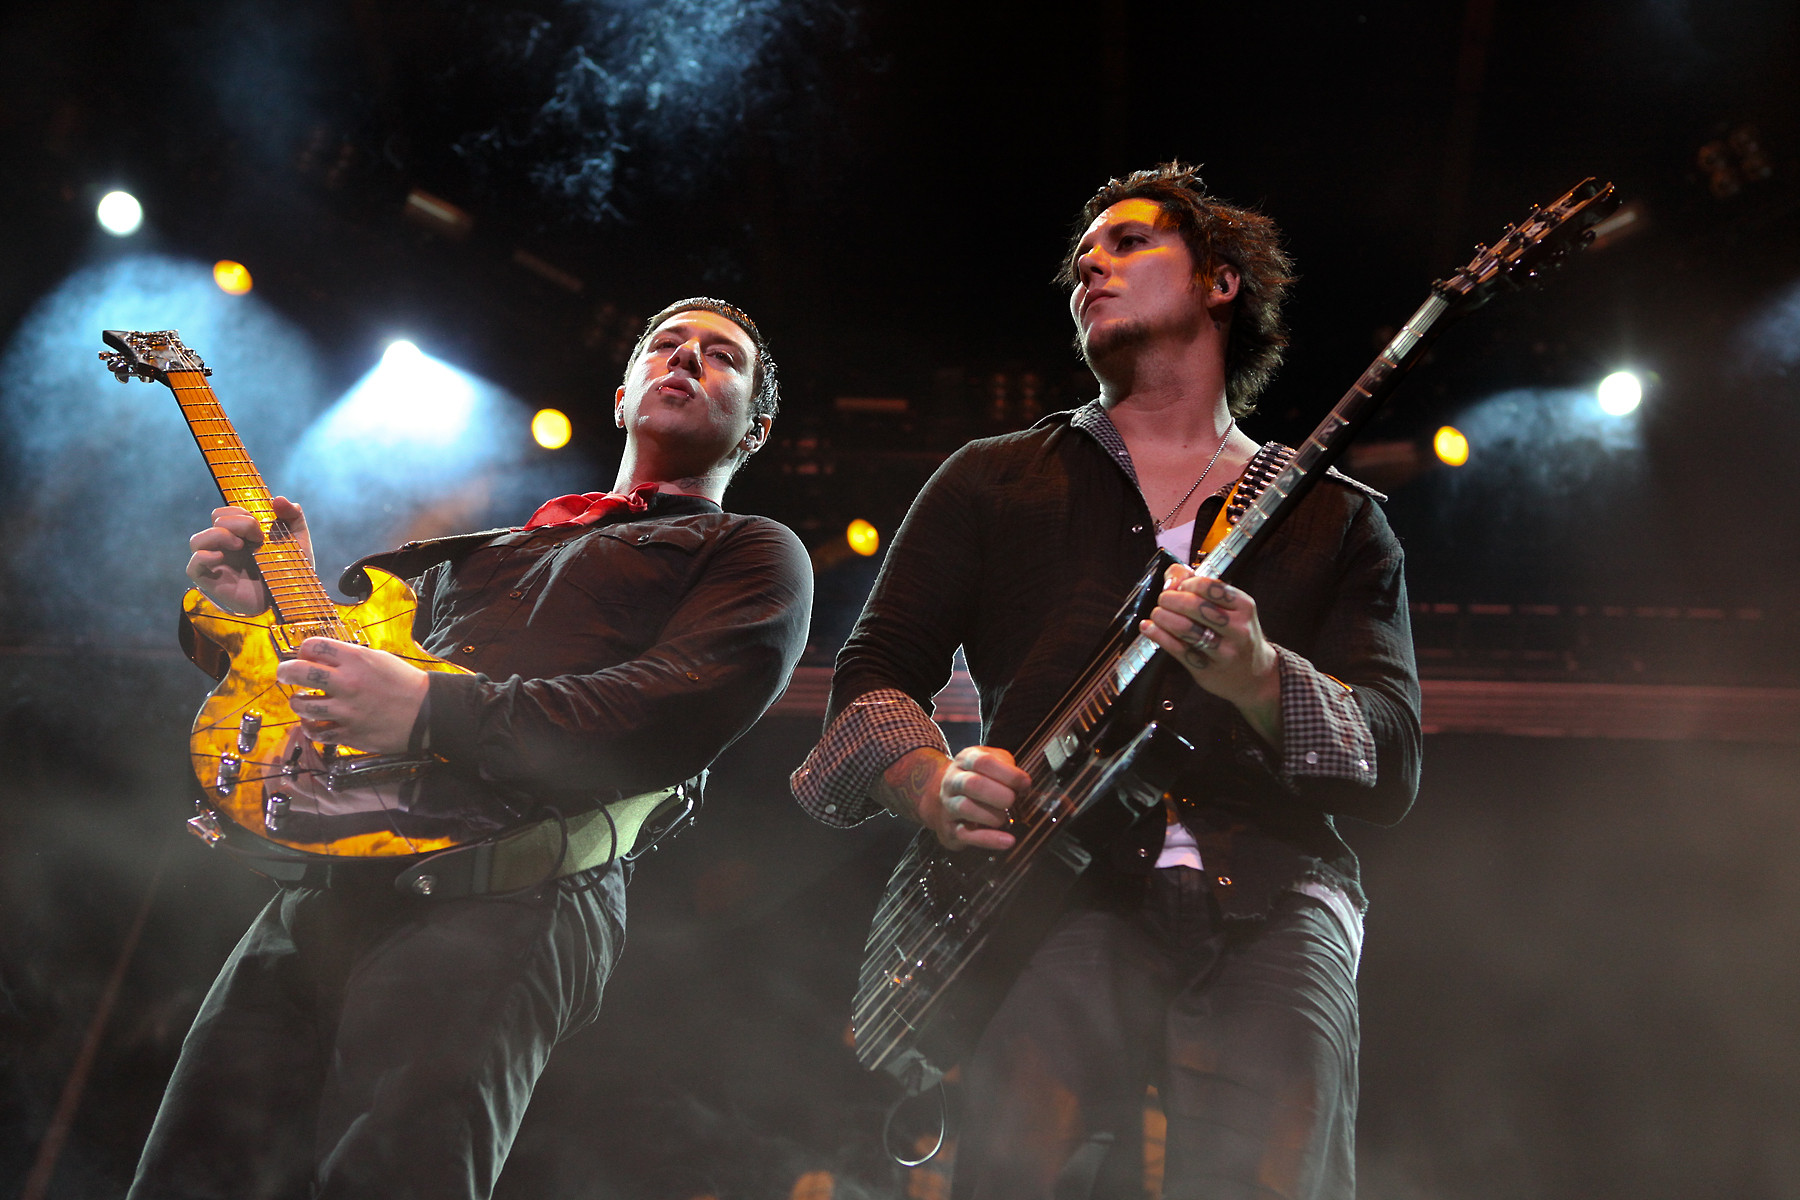 Avenged Sevenfold @ Uproar 2010